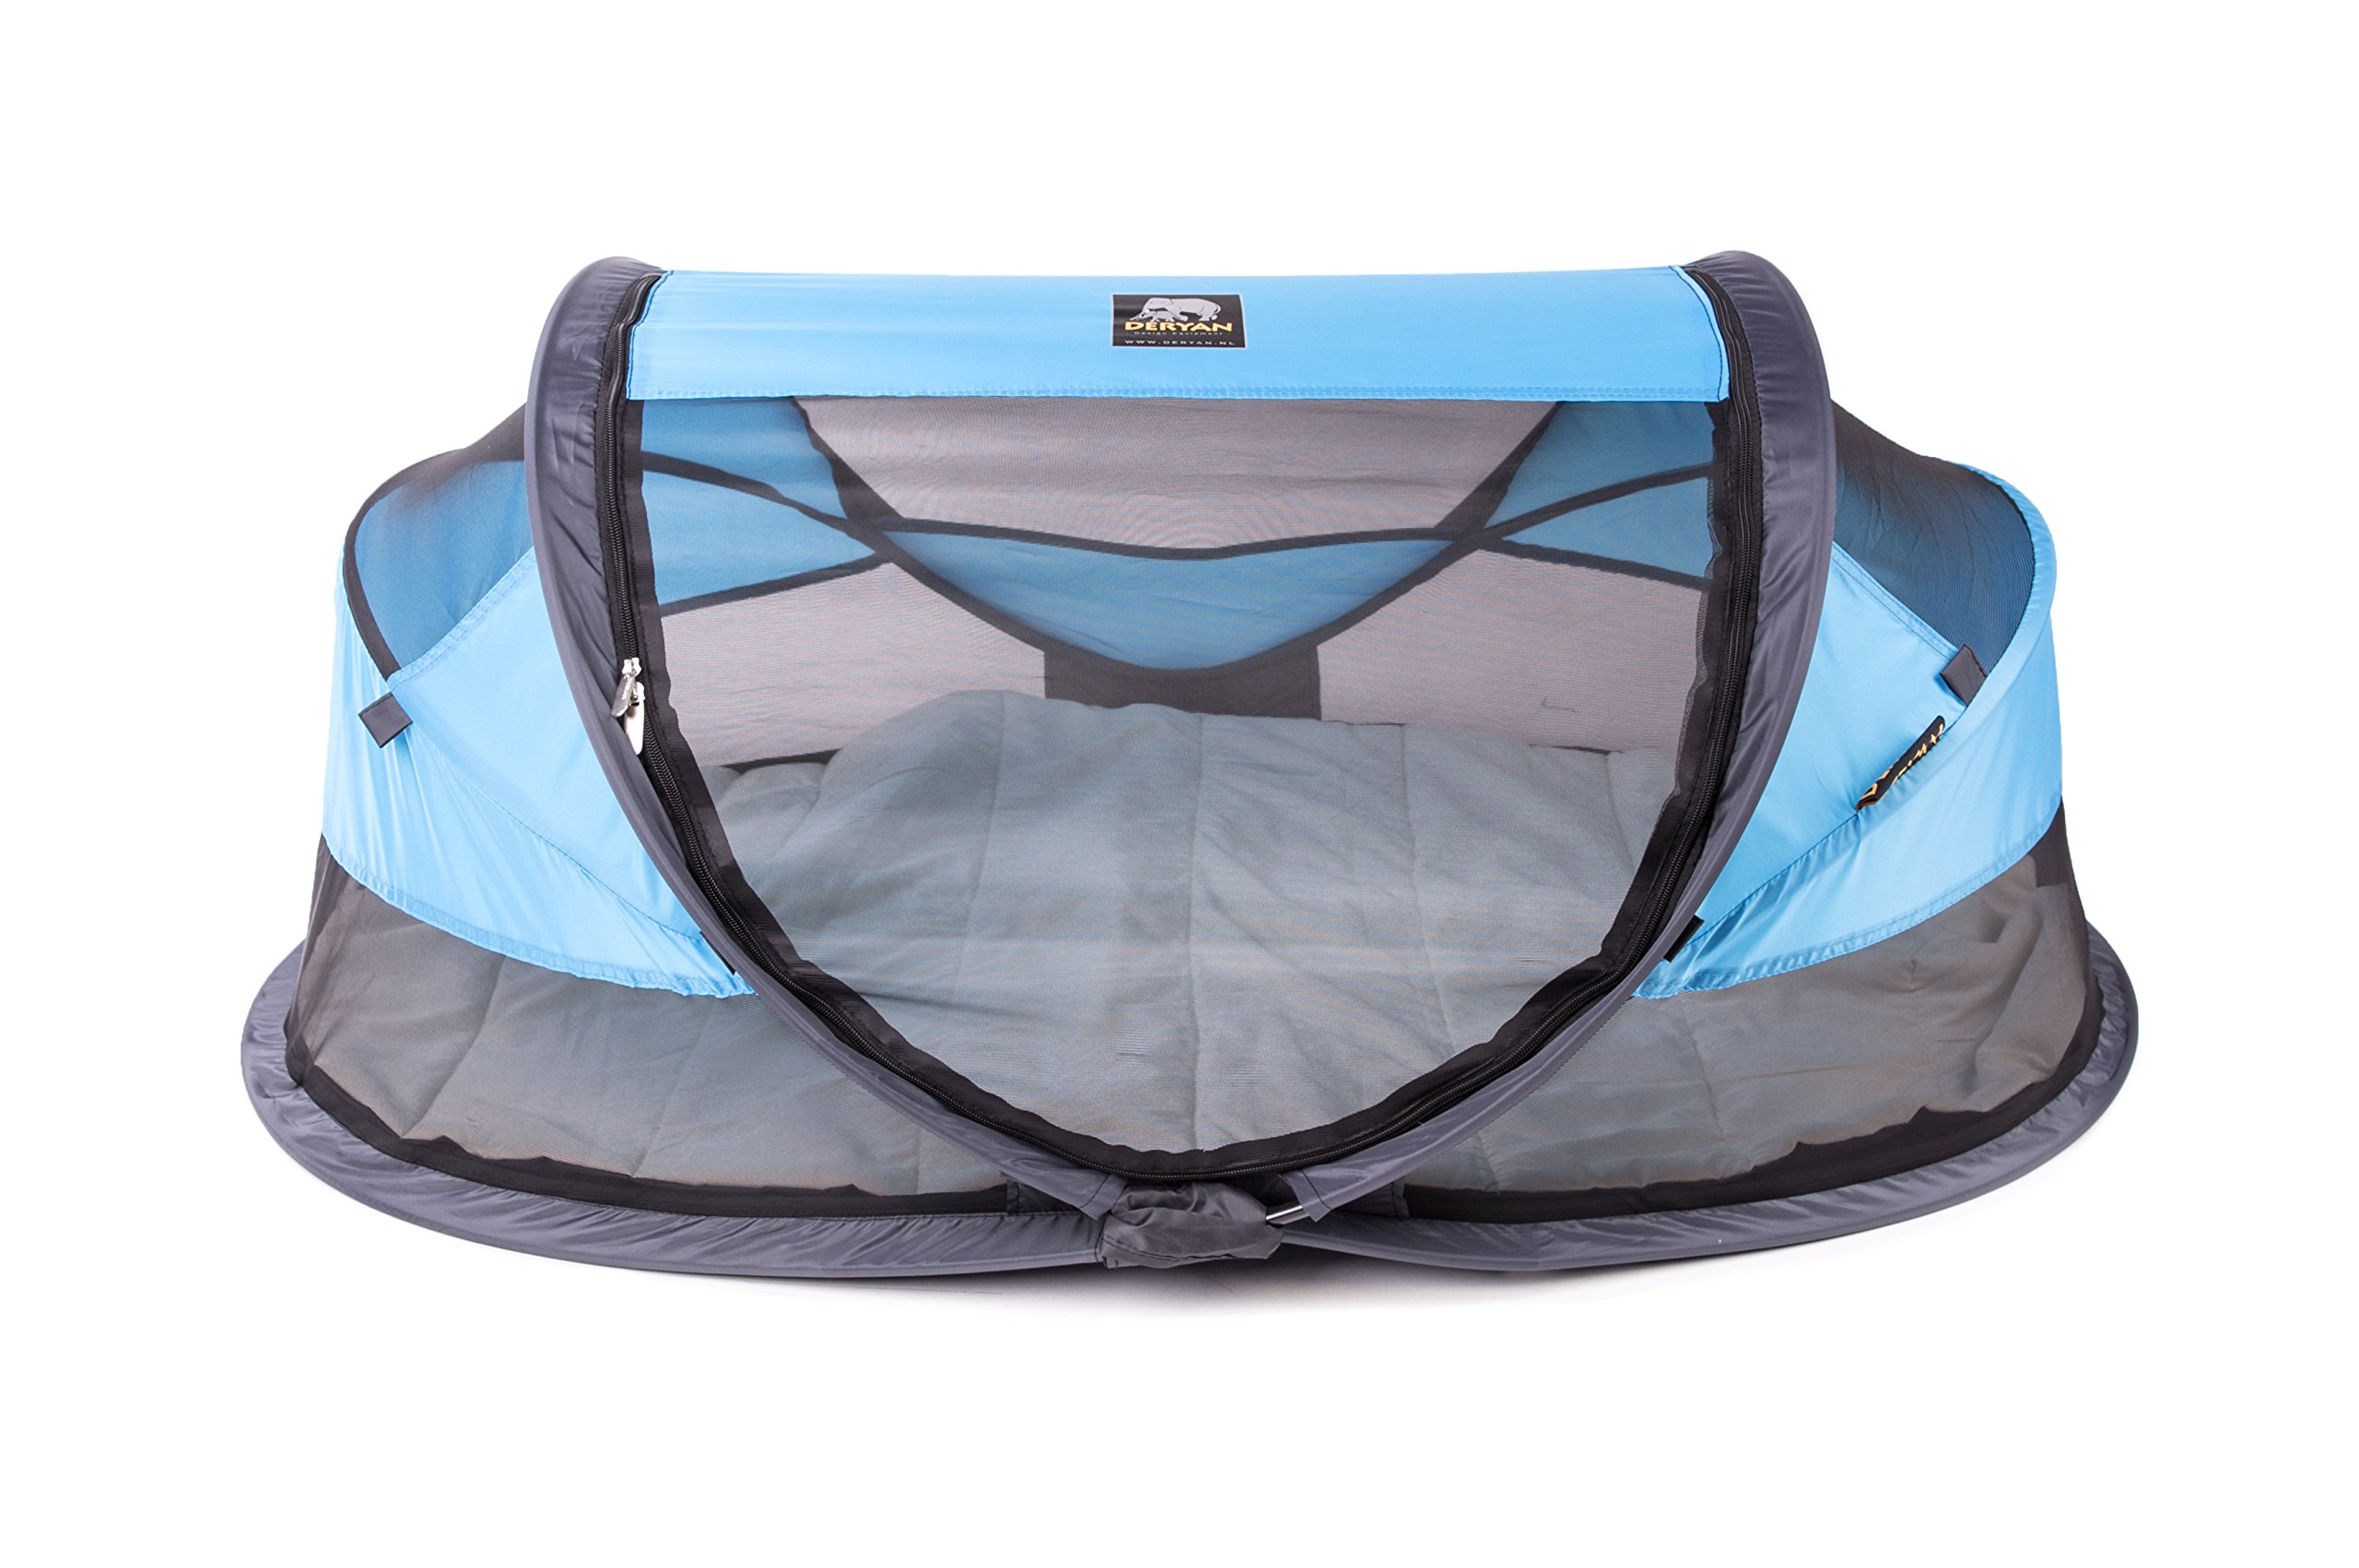 Deryan travel cot / travel cot Baby Luxe travel tent including sleeping mat, self-inflatable air mattress and carrying bag with pop-up built within 2 seconds, Blue Deryan 50% UV Protection and flame retardant fabric Setup in 2 seconds and a anti-musquito net  1